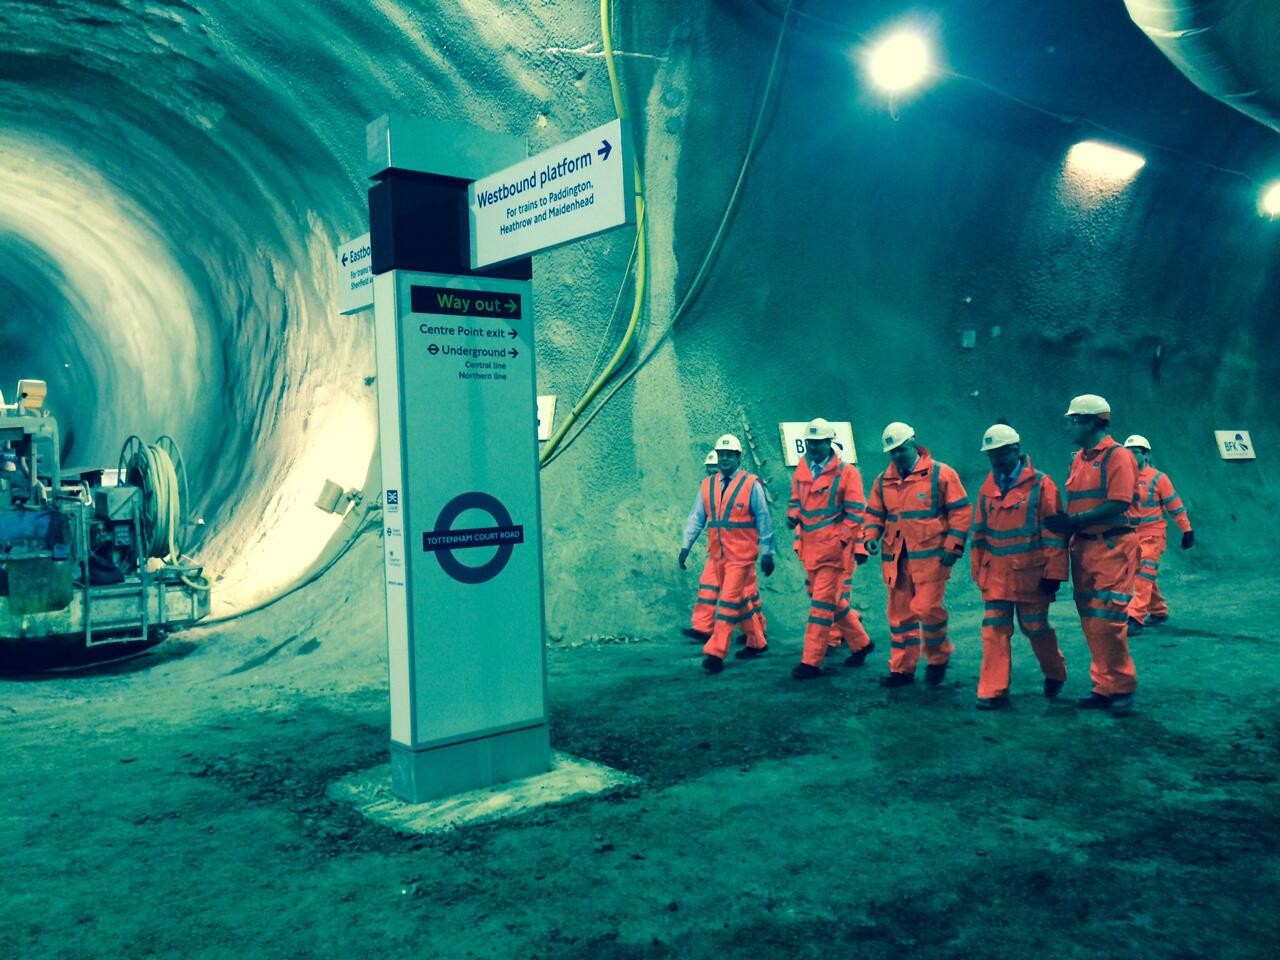 Earlier I visited the @Crossrail site at Tott Crt Rd w/ @David_Cameron which is now half way through construction 1/2 http://t.co/kmEkW4BhRC